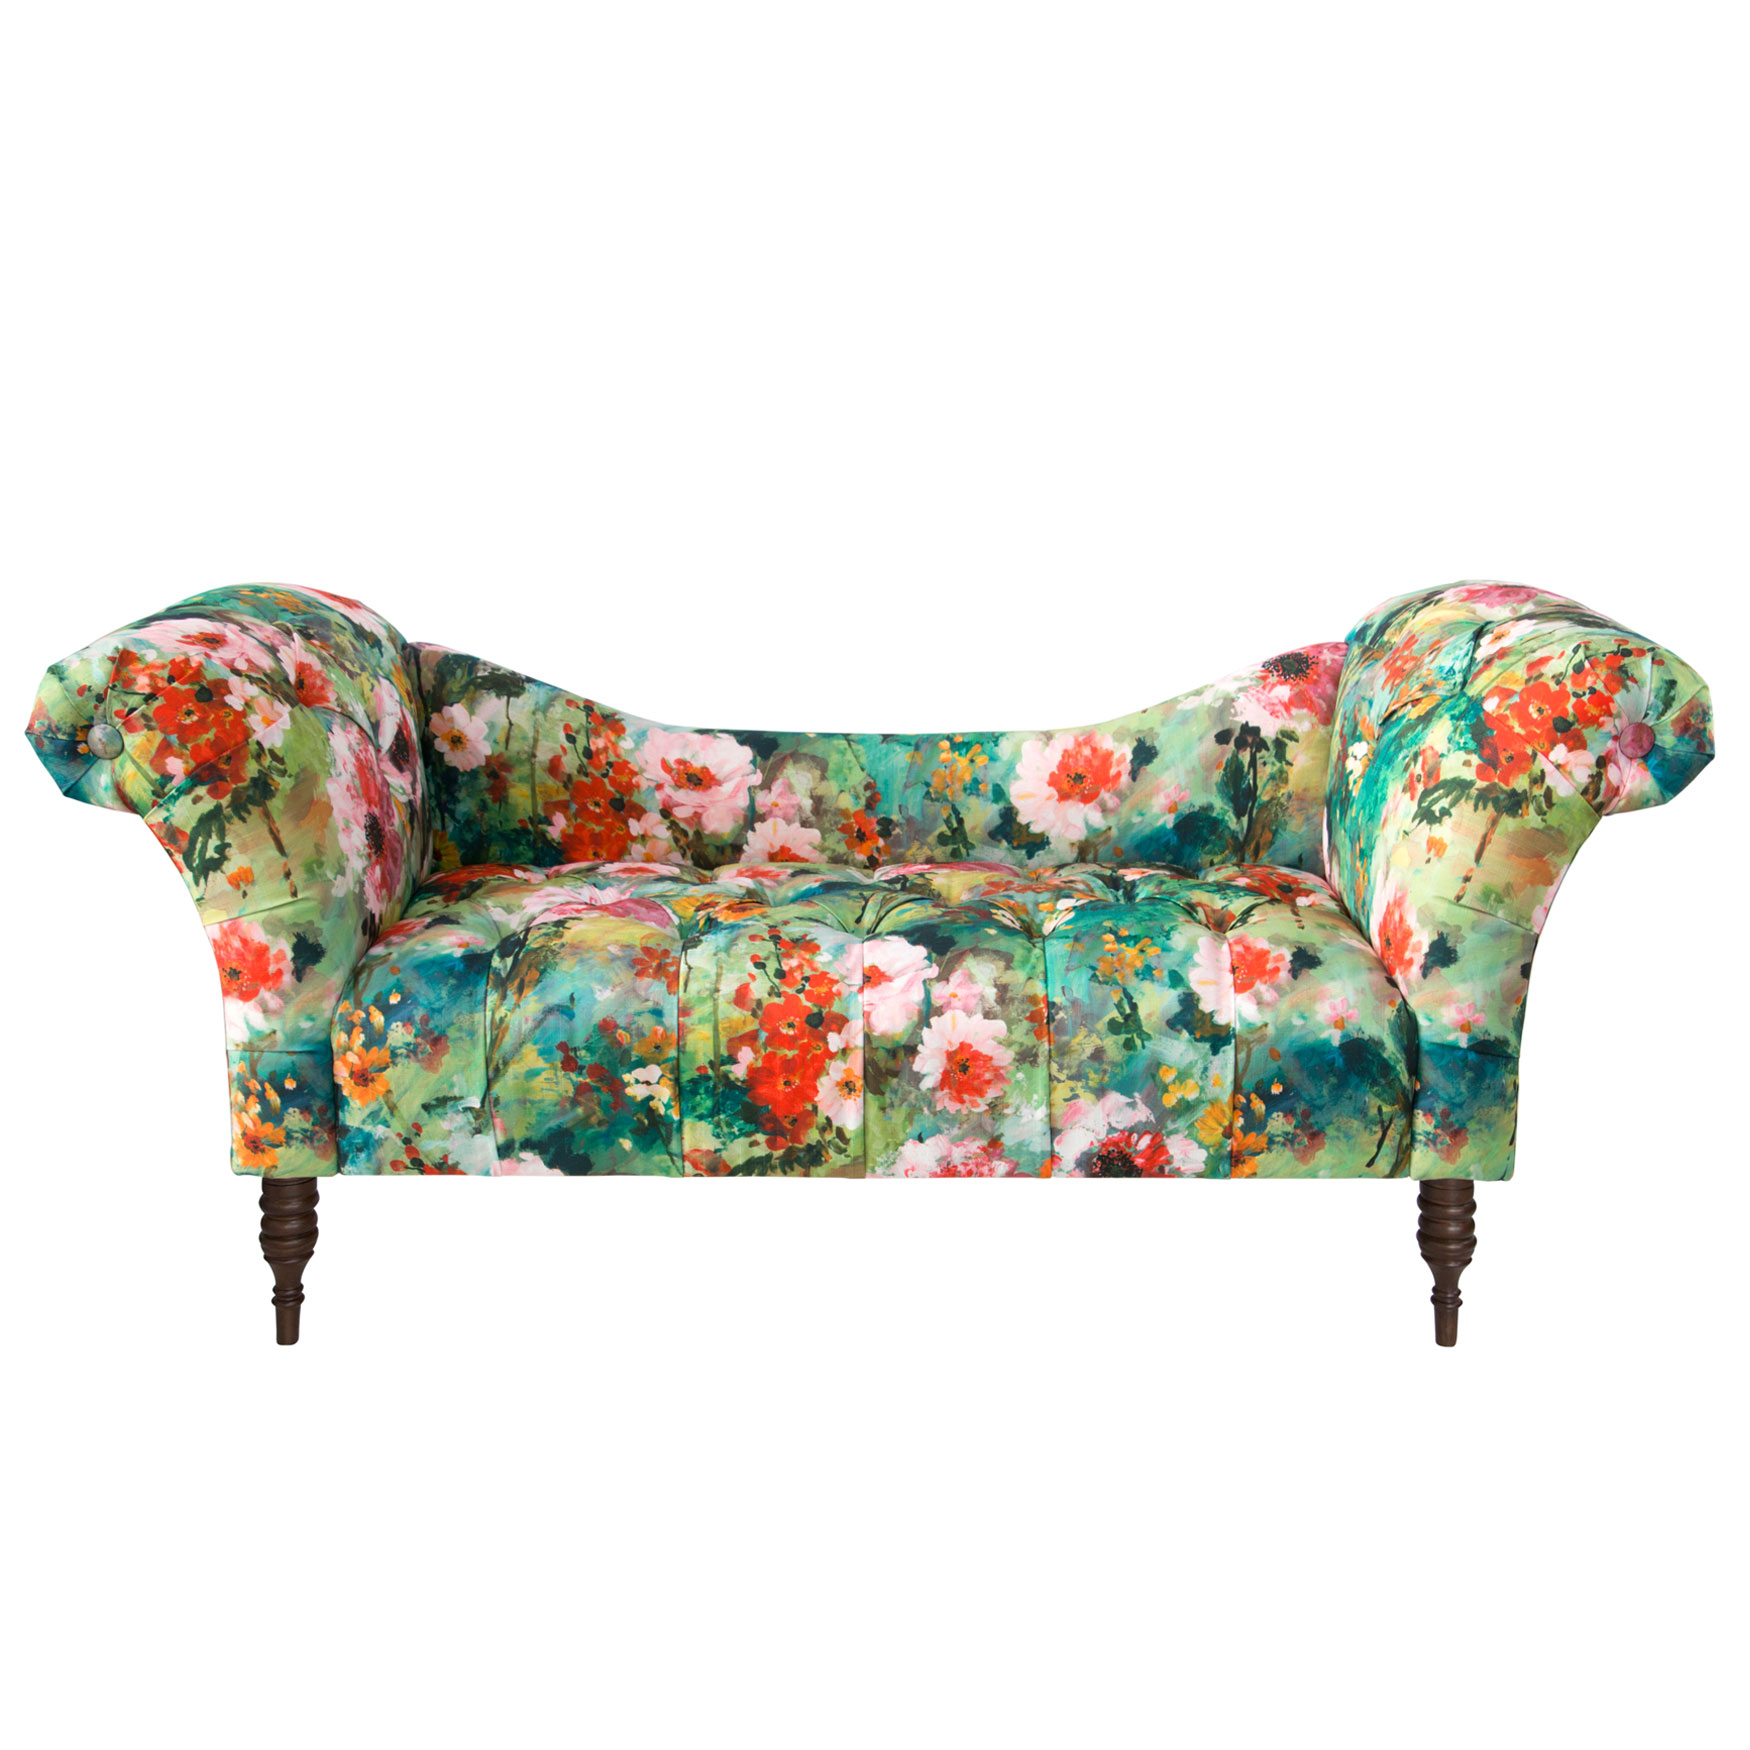 Tufted Chaise Lounge, JULIET MULTI